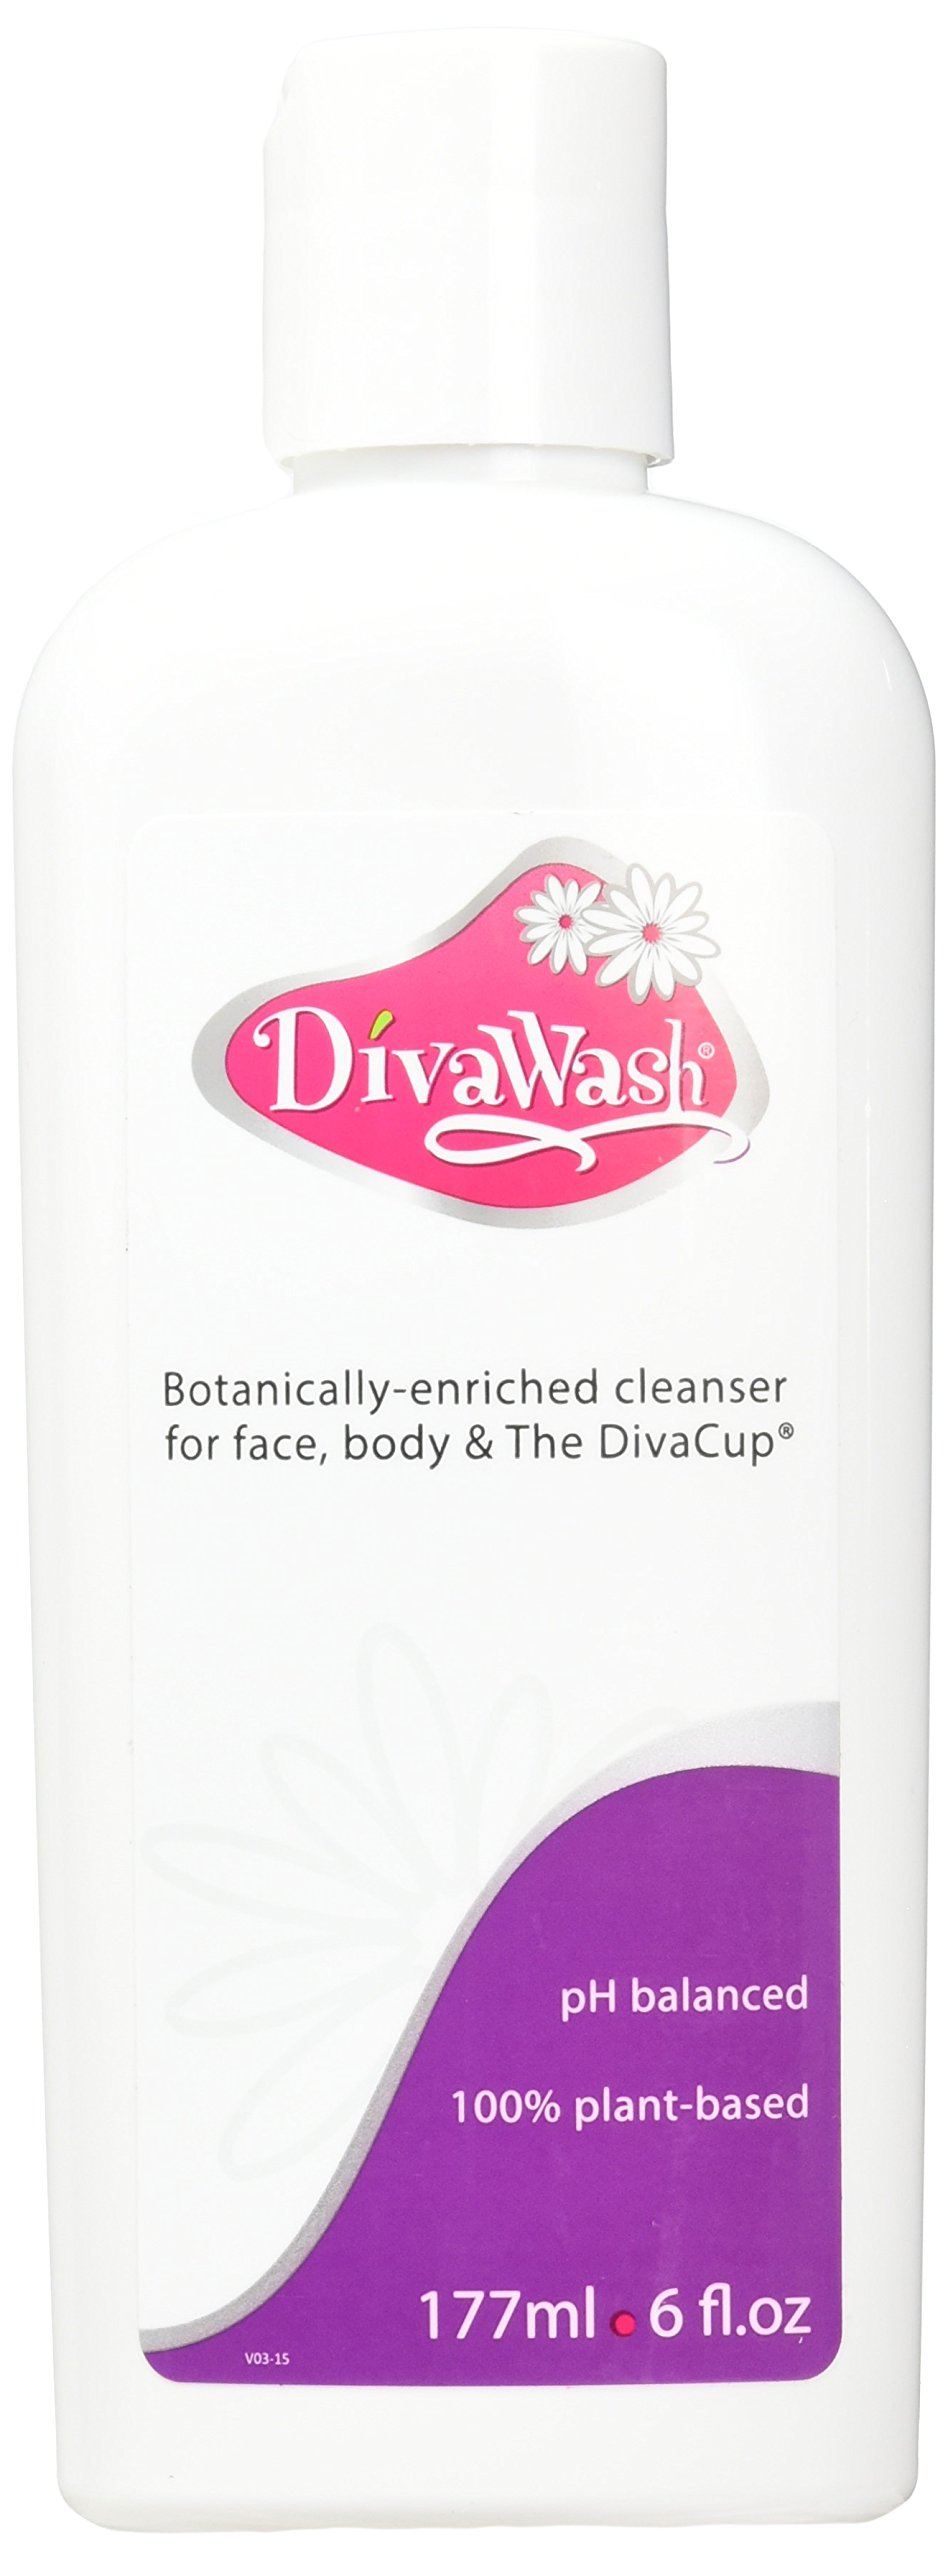 Divacup Divawash? Natural Divacup Cleaner 6 Fl Oz (Pack of 2)